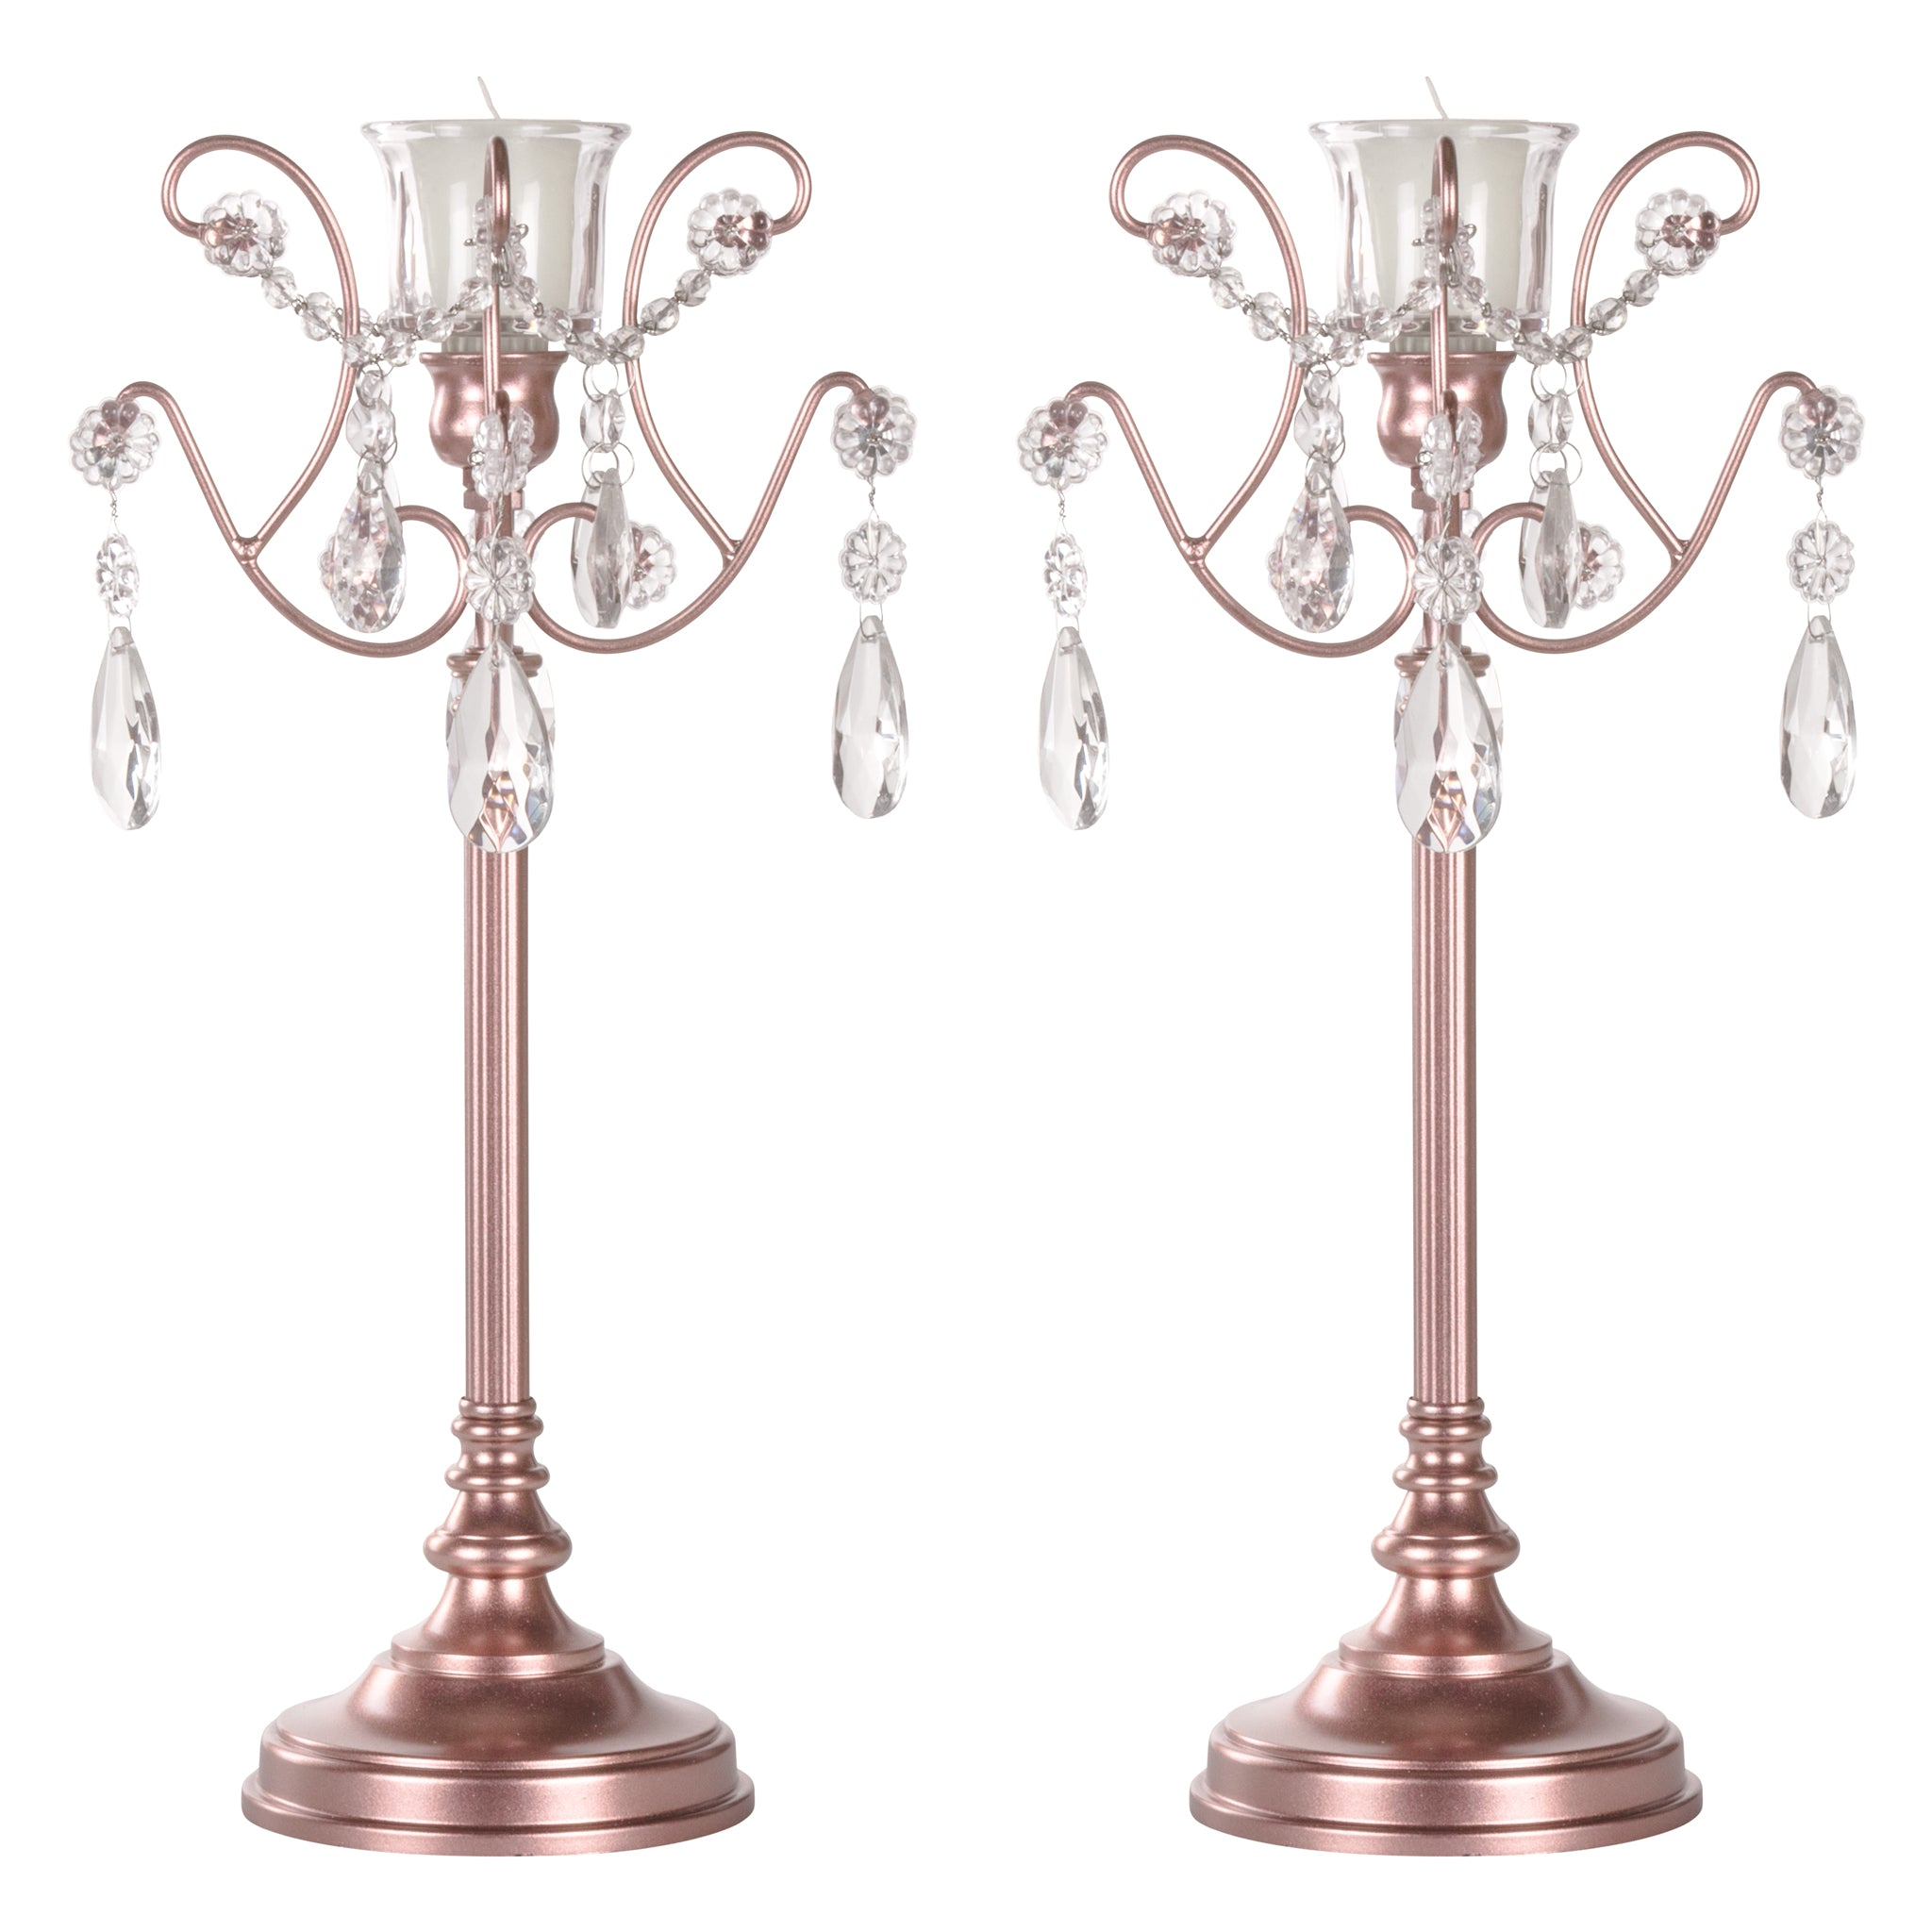 Amalfi Decor 2-Piece Metal Candlestick Candelabra Set with Glass Crystals (Rose Gold) | Stainless Steel Frame with Glass Crystal